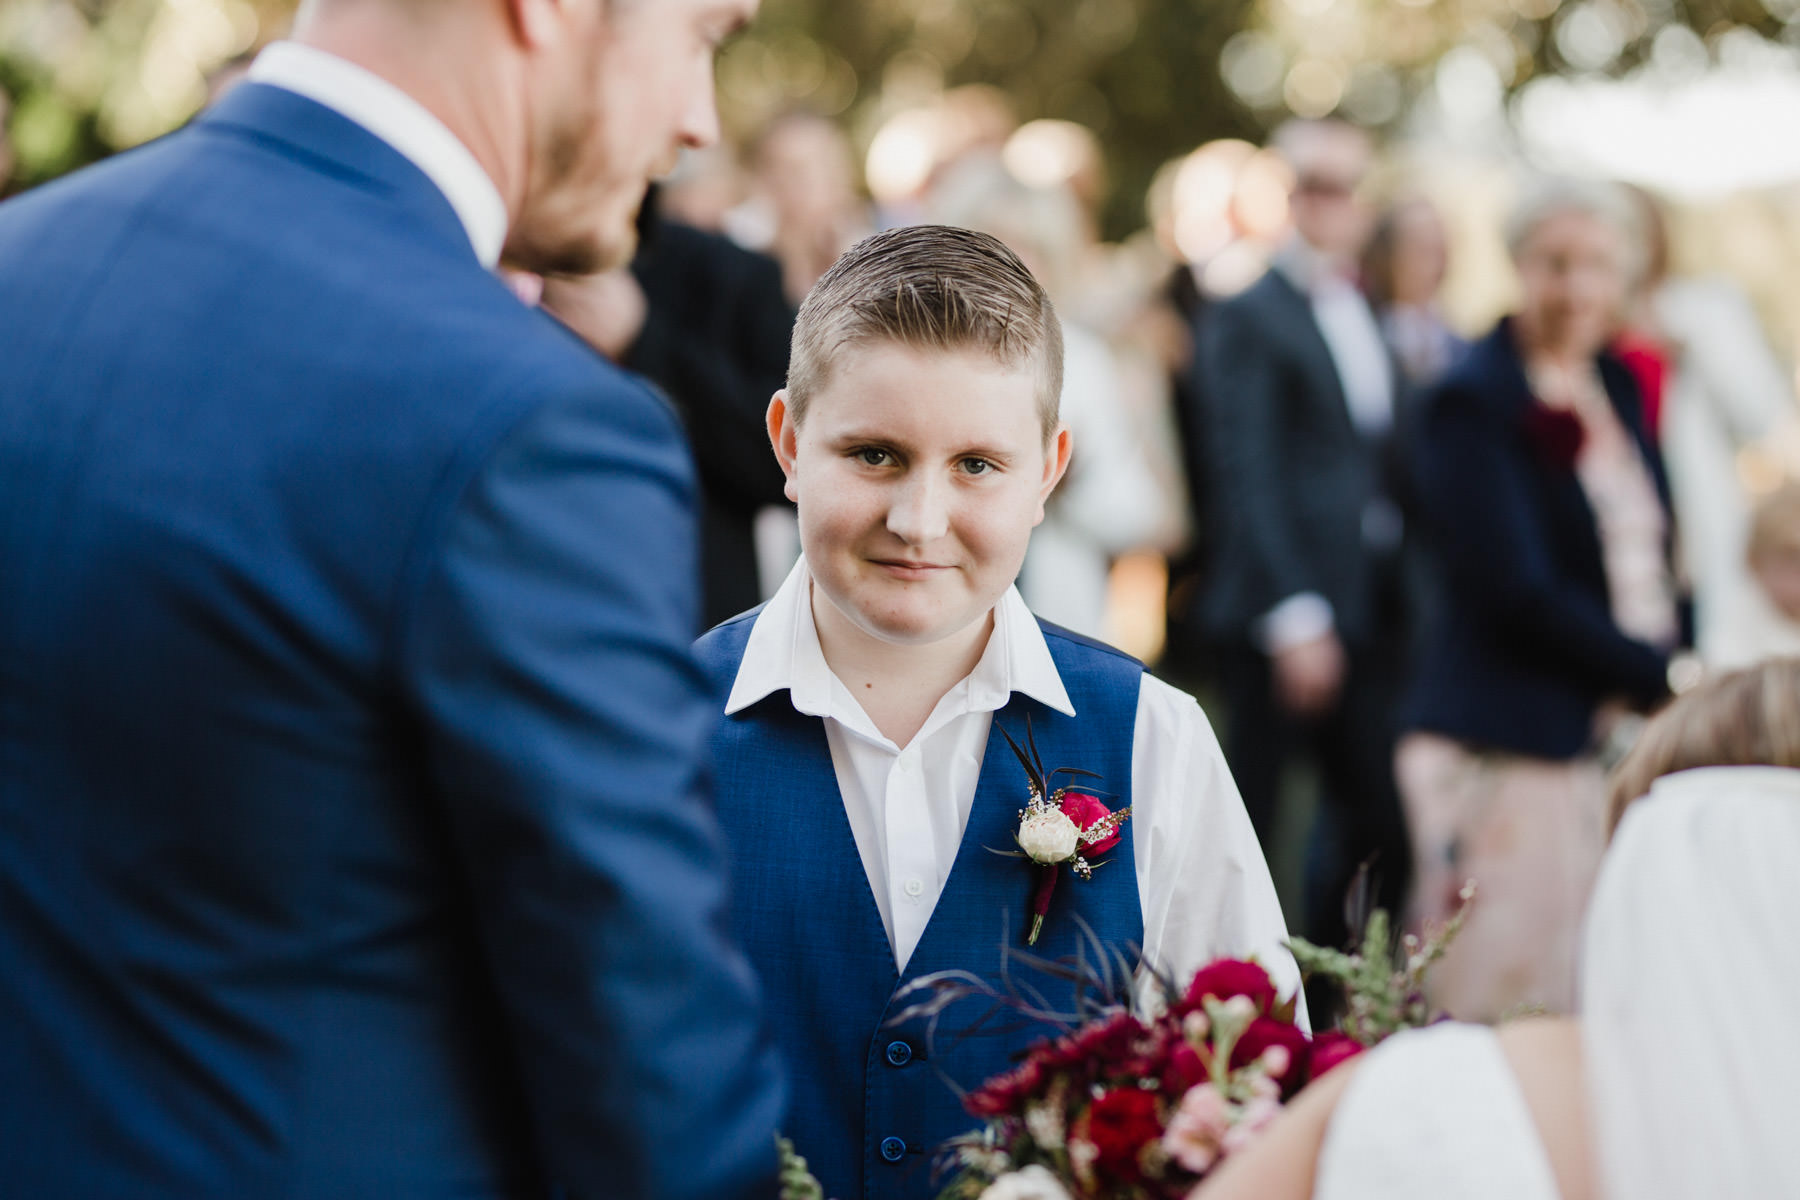 067Hunter Valley Wedding Photographers Bryce Noone Photography at Tocal Homestead Wedding Venue.jpg